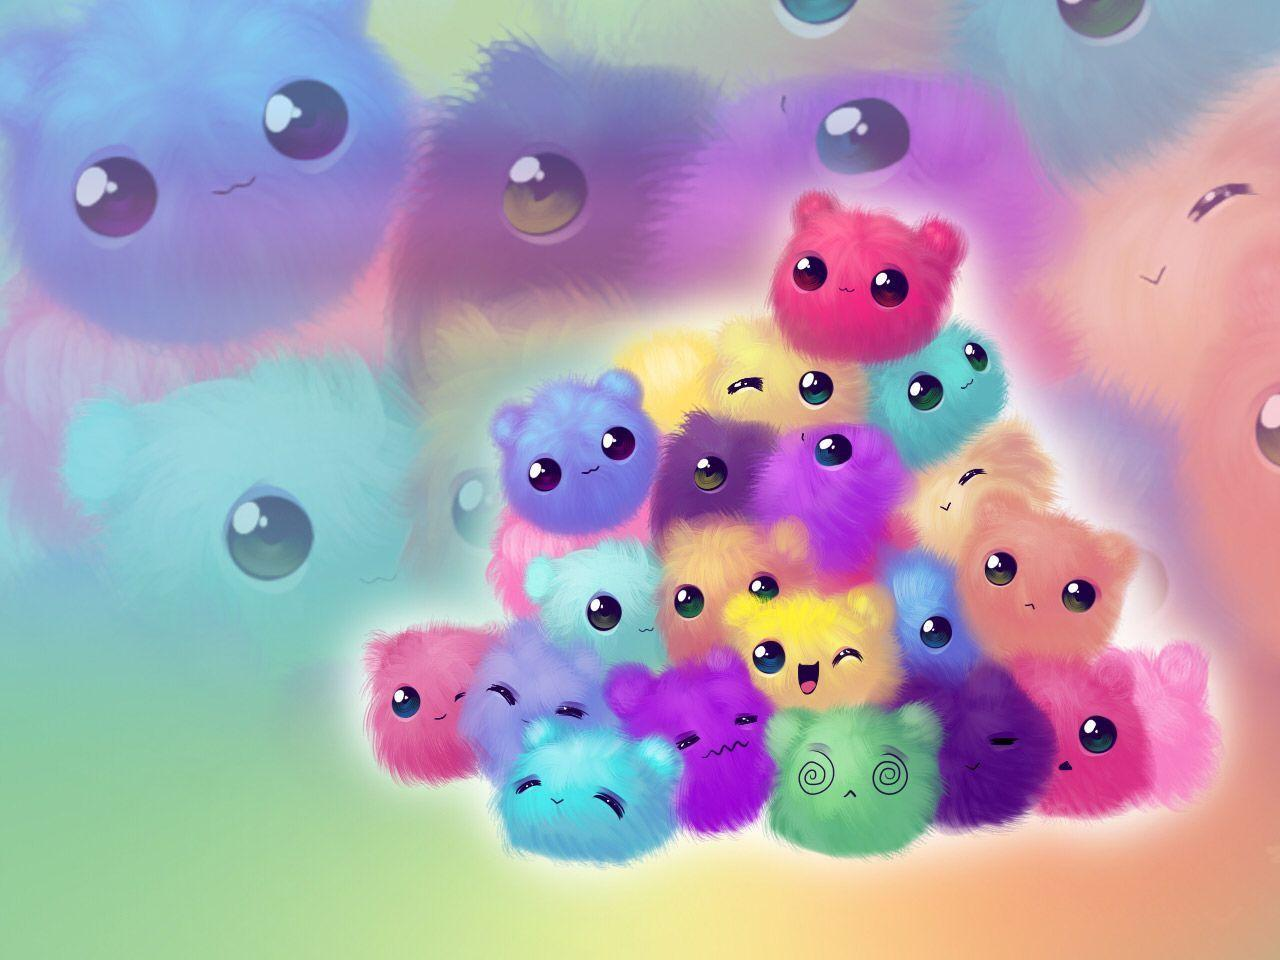 Desktop Backgrounds Cute 1280x960